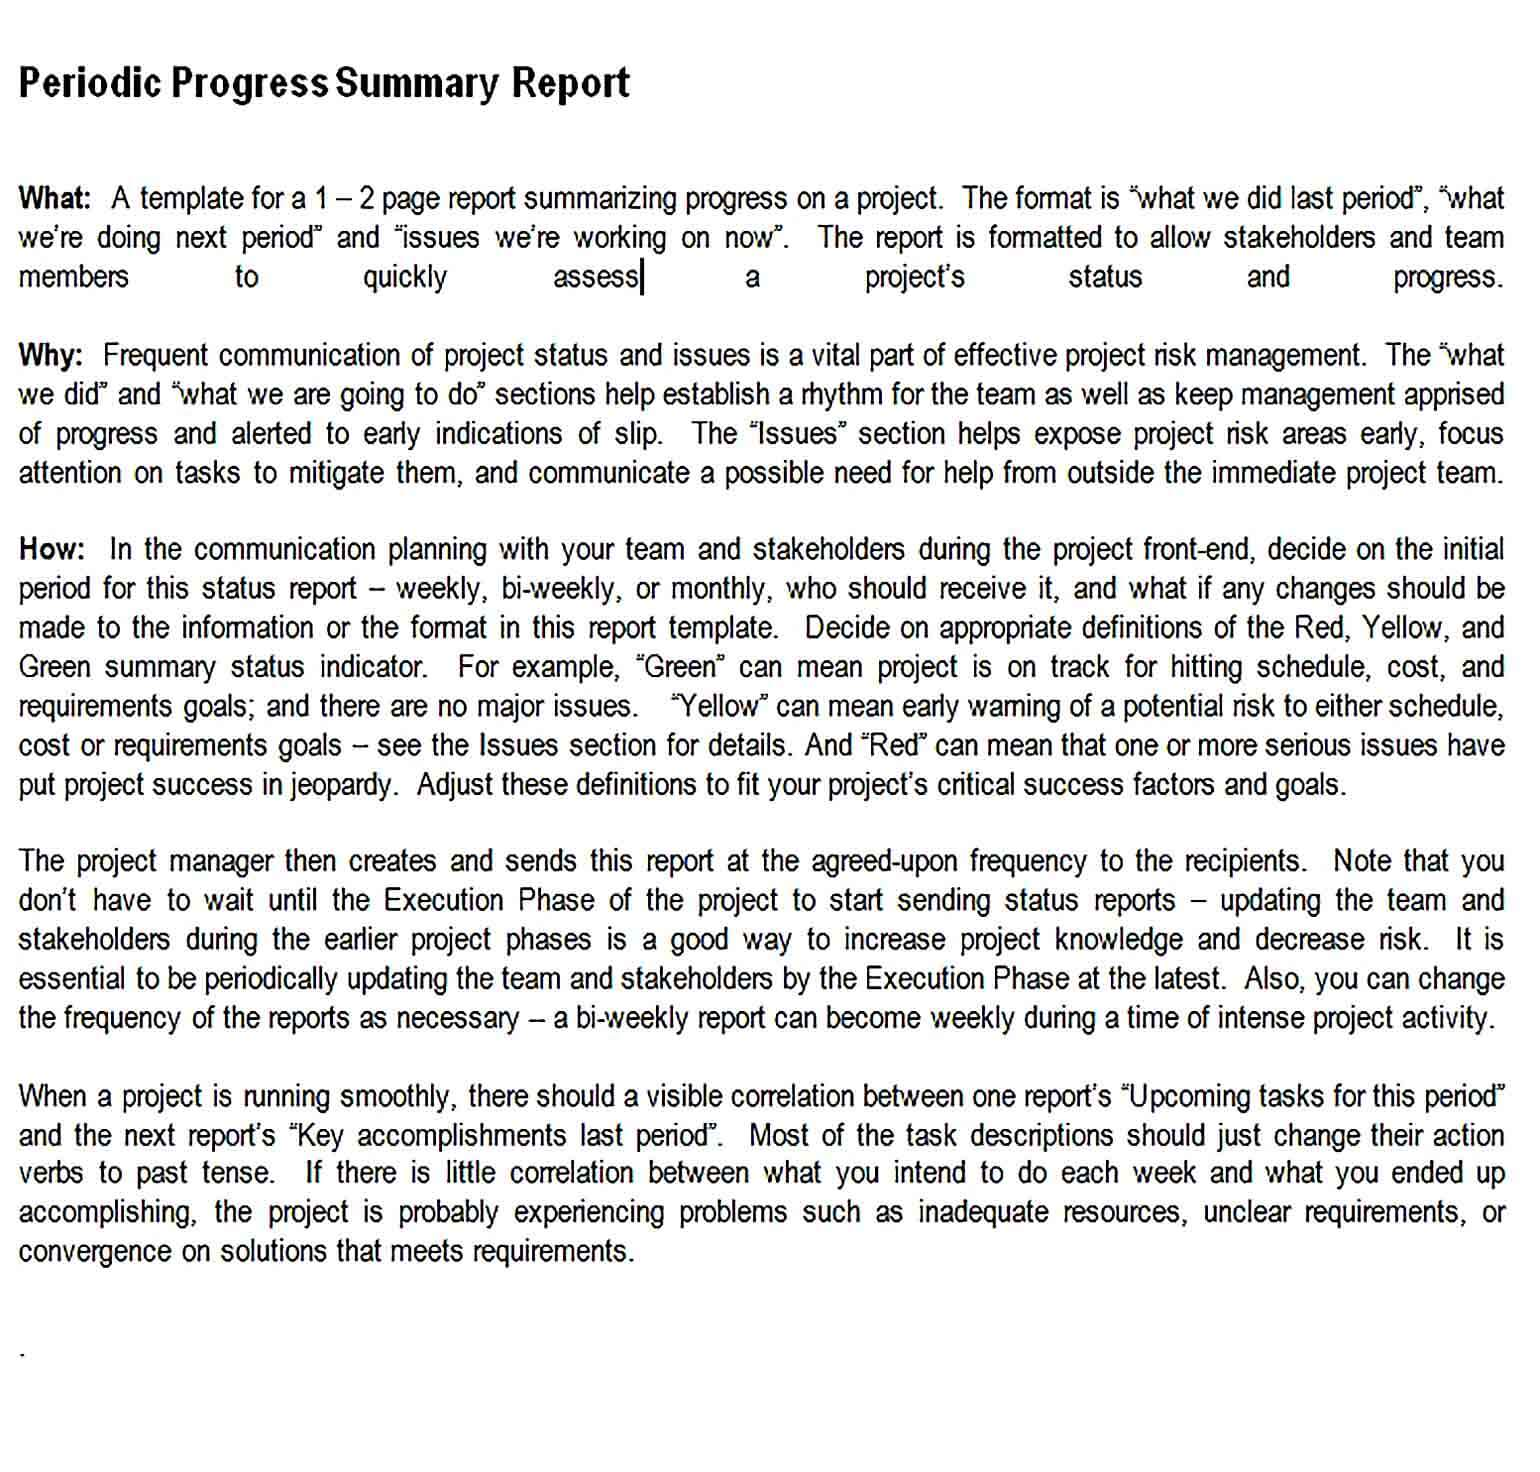 Sample Periodic Summary Progress Report Word Template